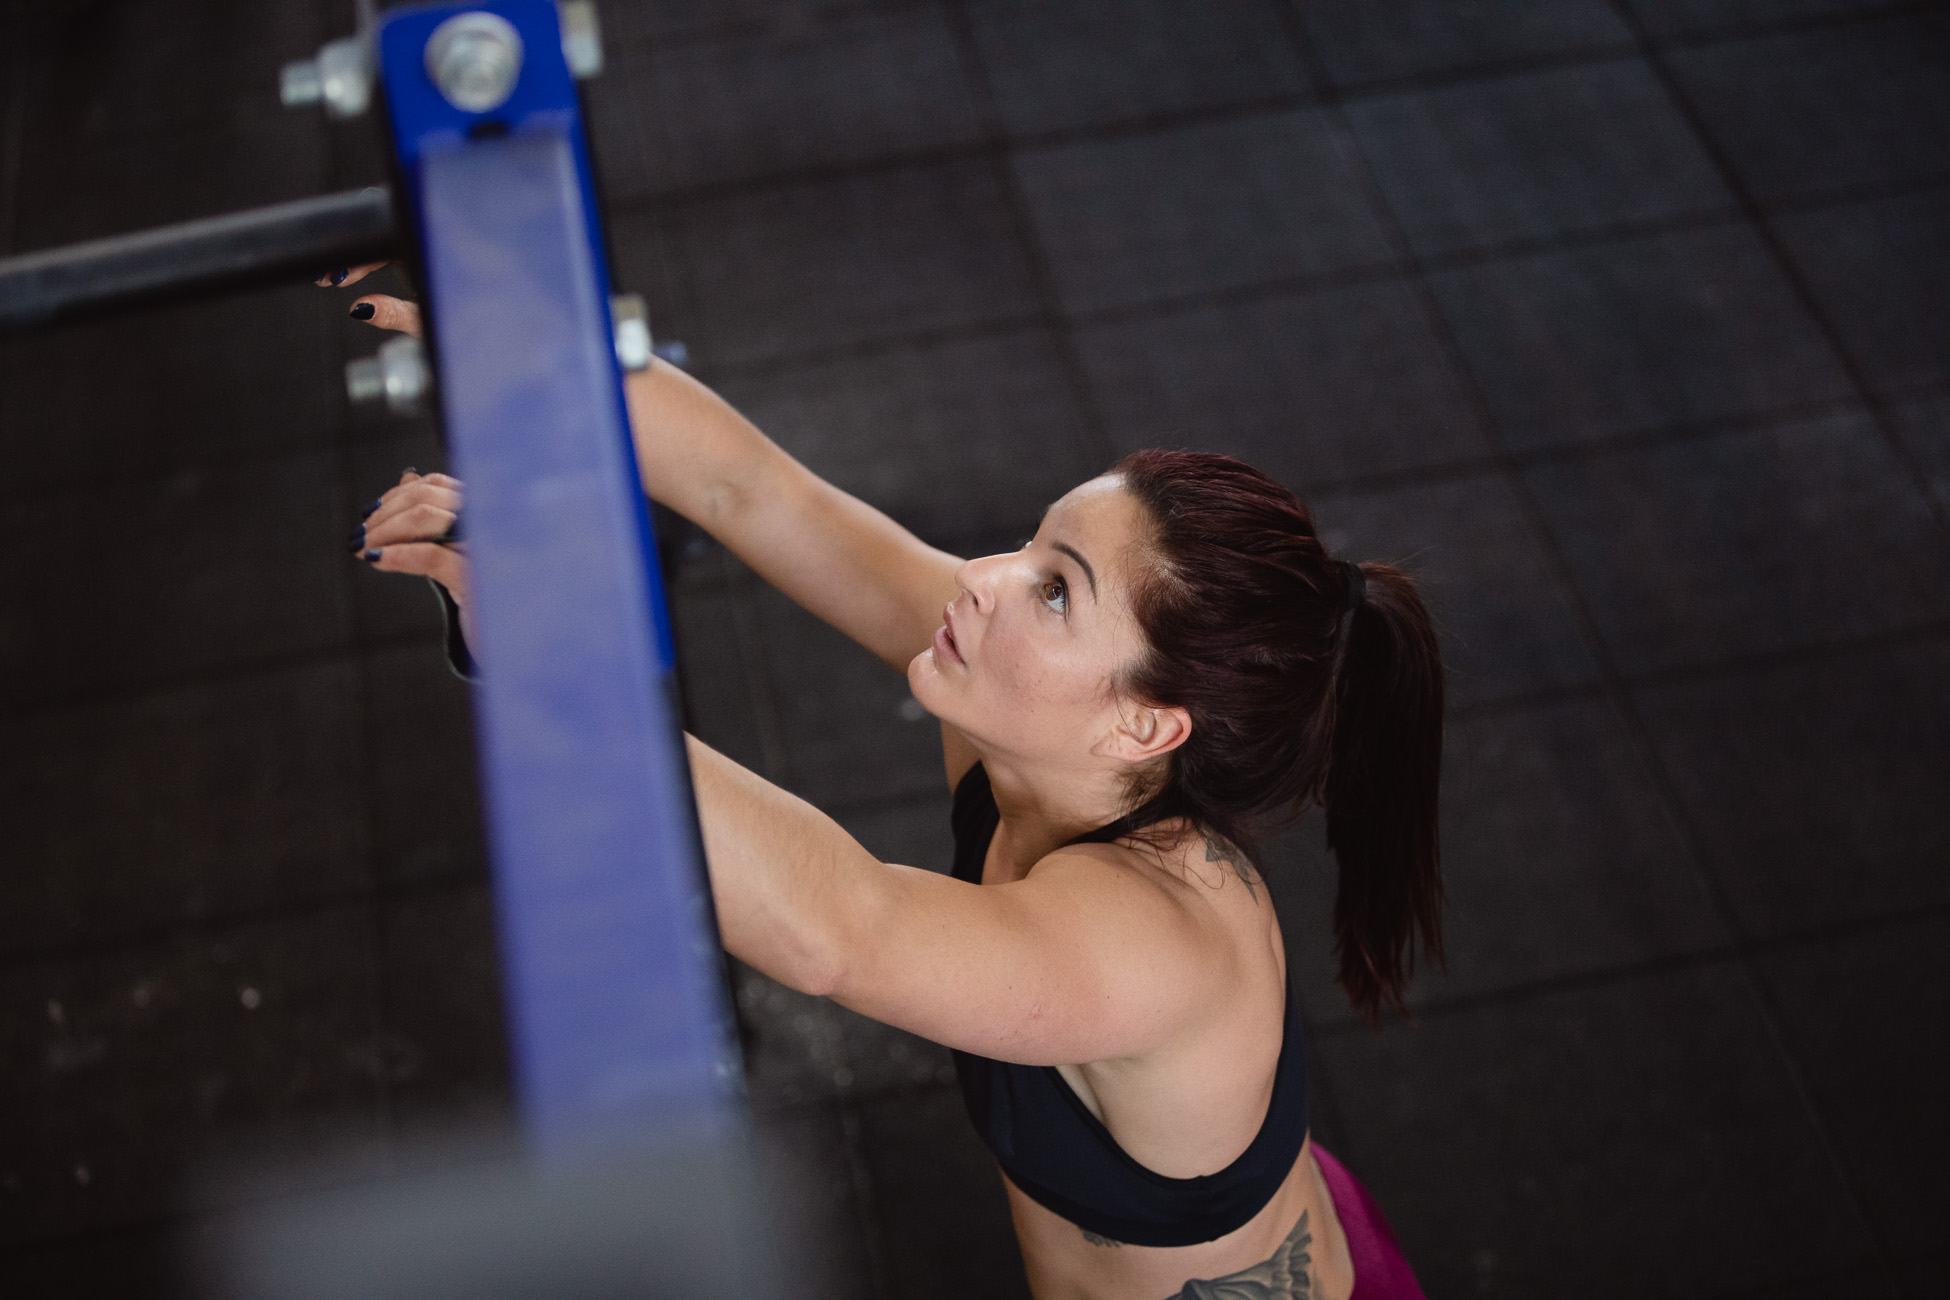 crossfit-games-open-fitness-sport-athlete-photography-004.jpg